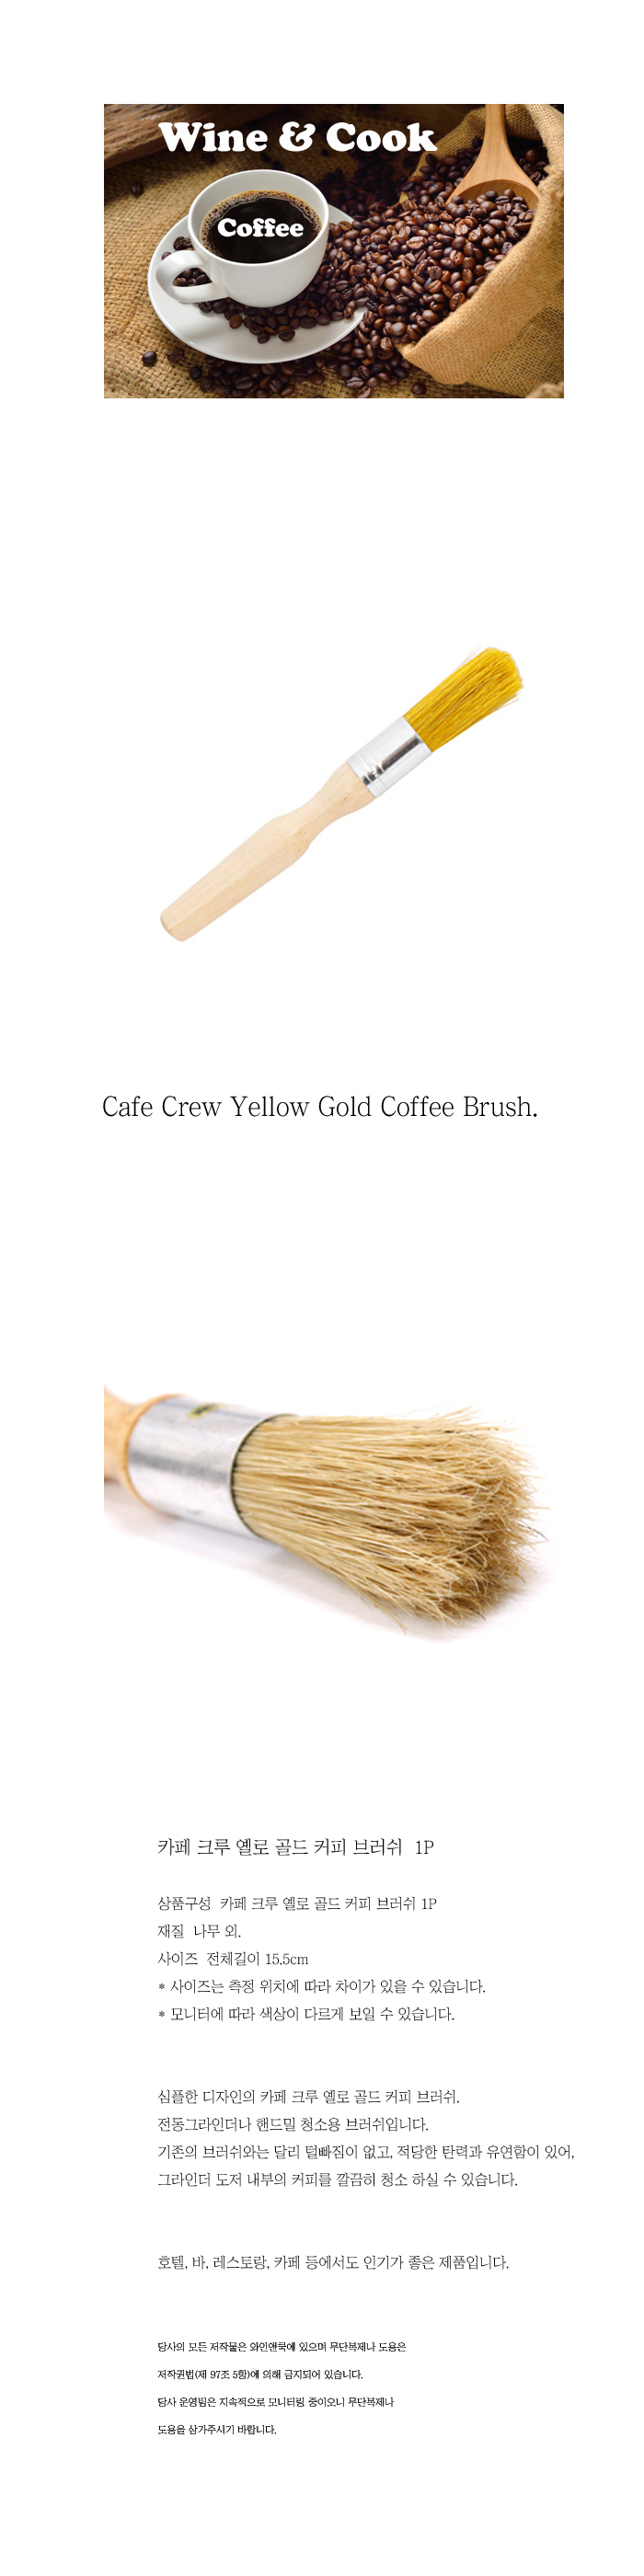 [ WINEQOK ] Cafe Crew Yellow Gold Coffee Brush  1P